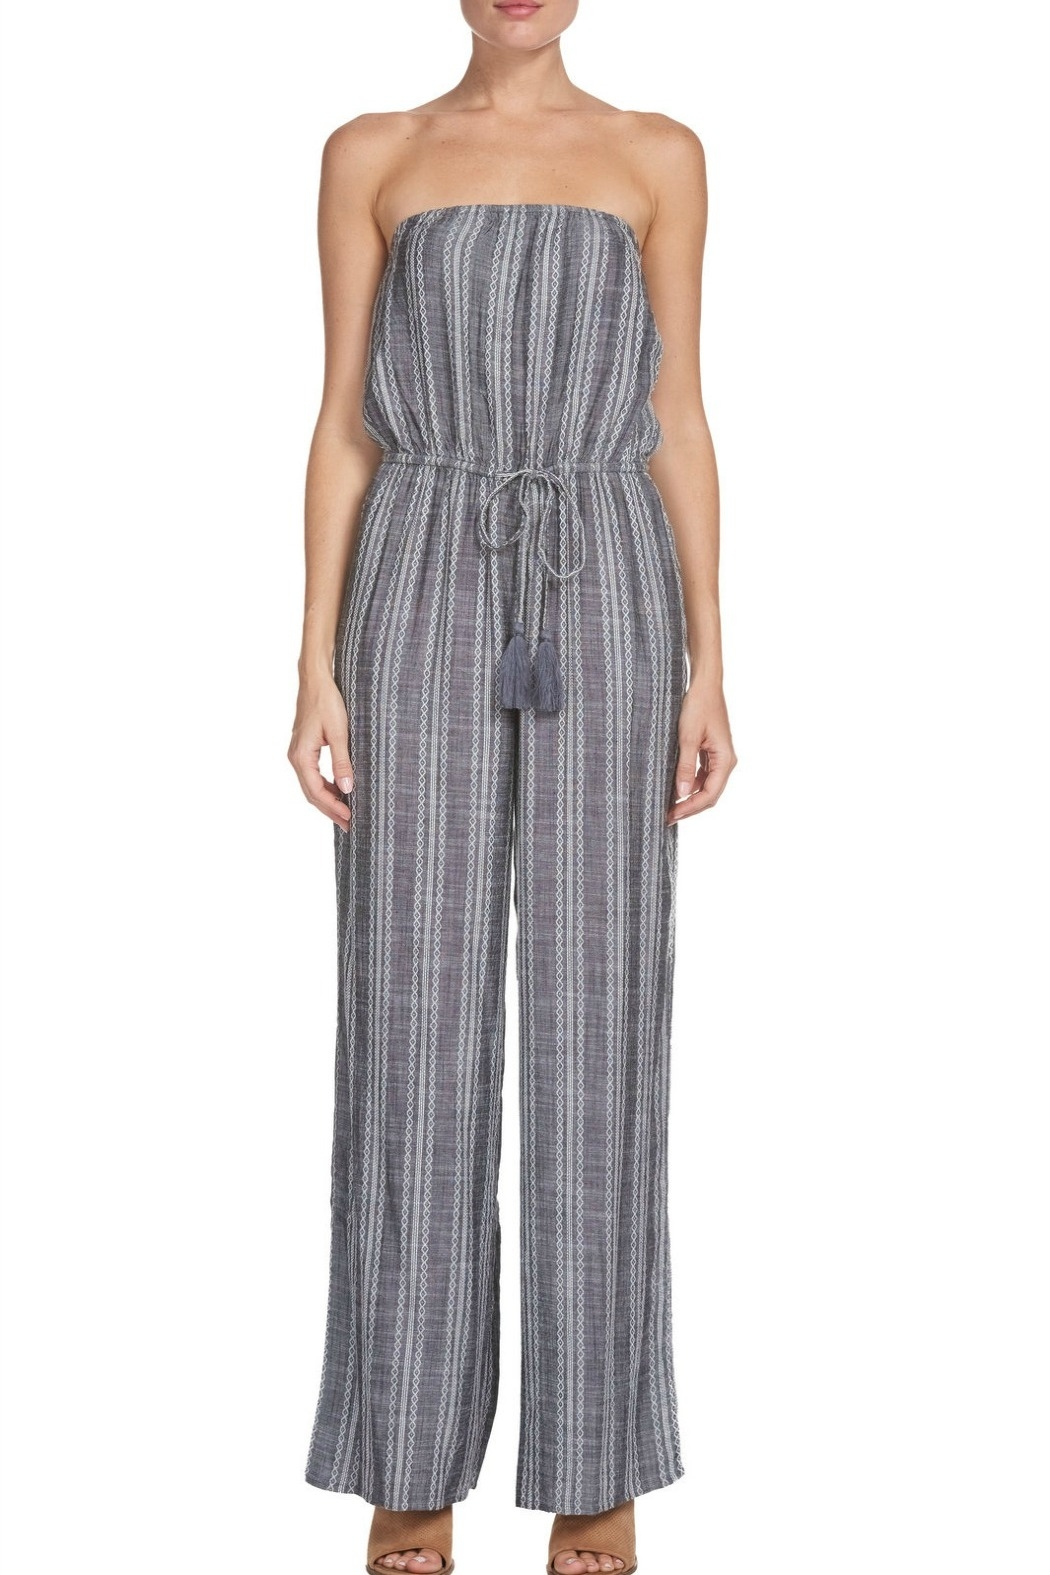 Elan In the Sand Jumpsuit - Main Image